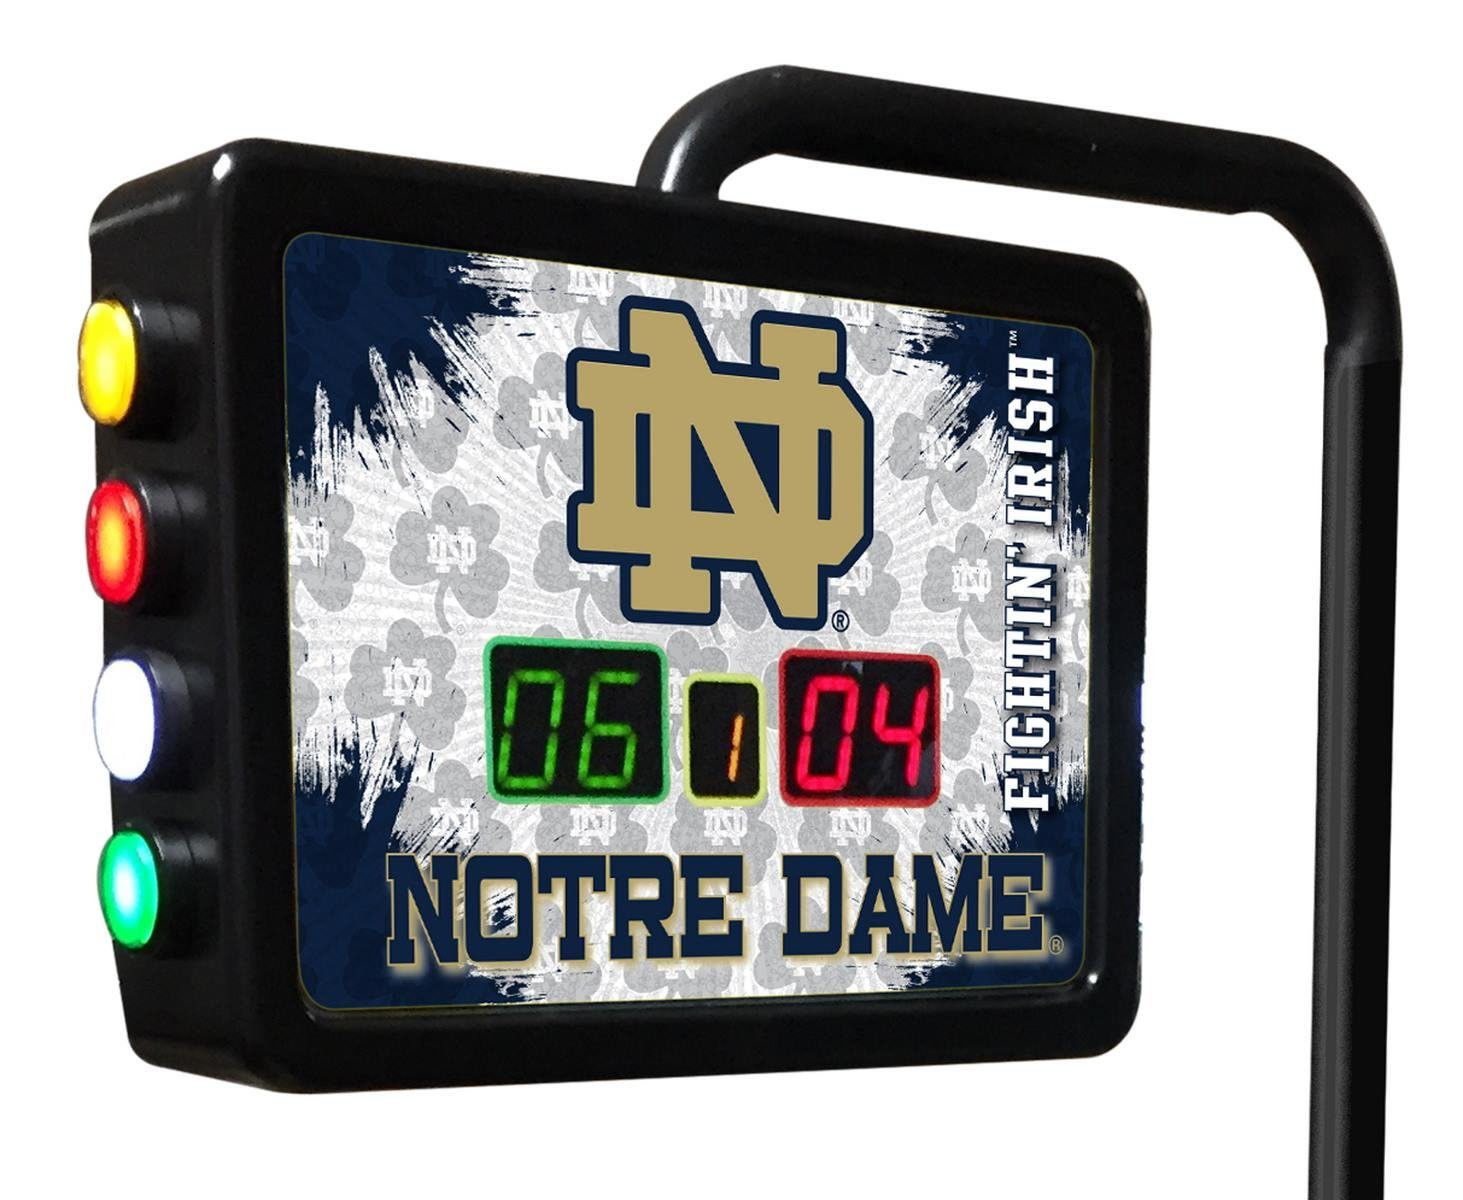 Notre Dame (ND) Electronic Shuffleboard Scoring Unit - Officially Licensed